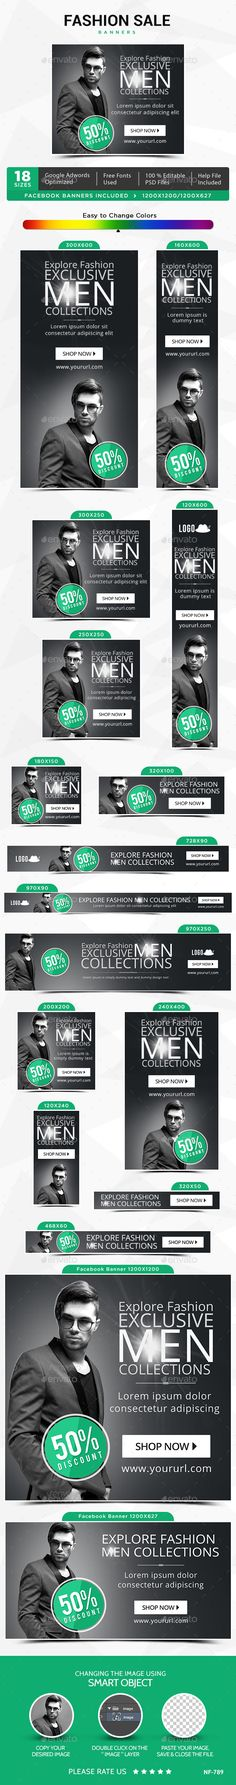 Fashion Sale Web Banners Template PSD #design #ads Download: http://graphicriver.net/item/fashion-sale-banners/13758357?ref=ksioks